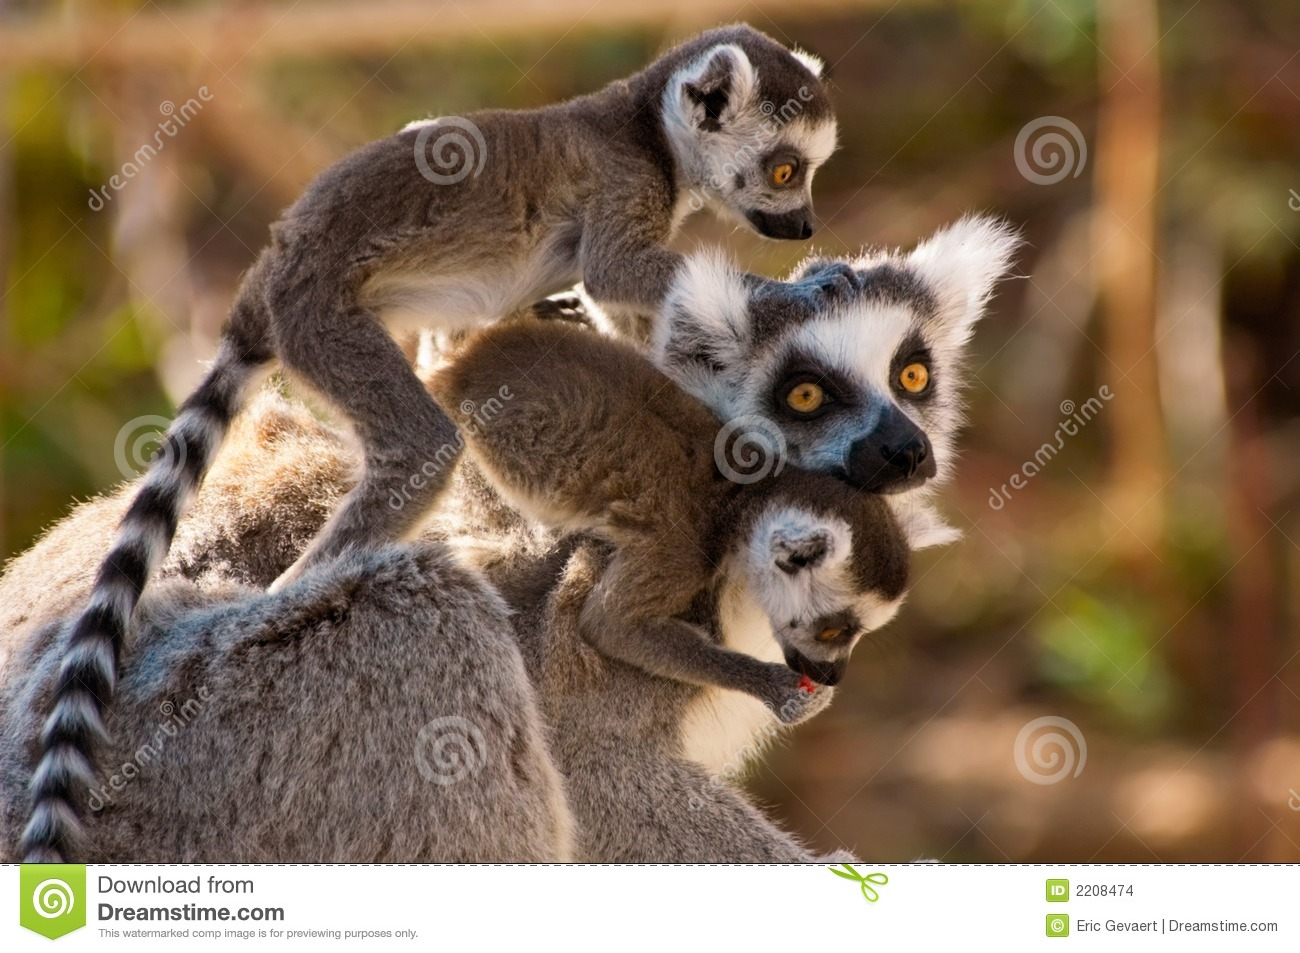 A goup of cute ring-tailed lem